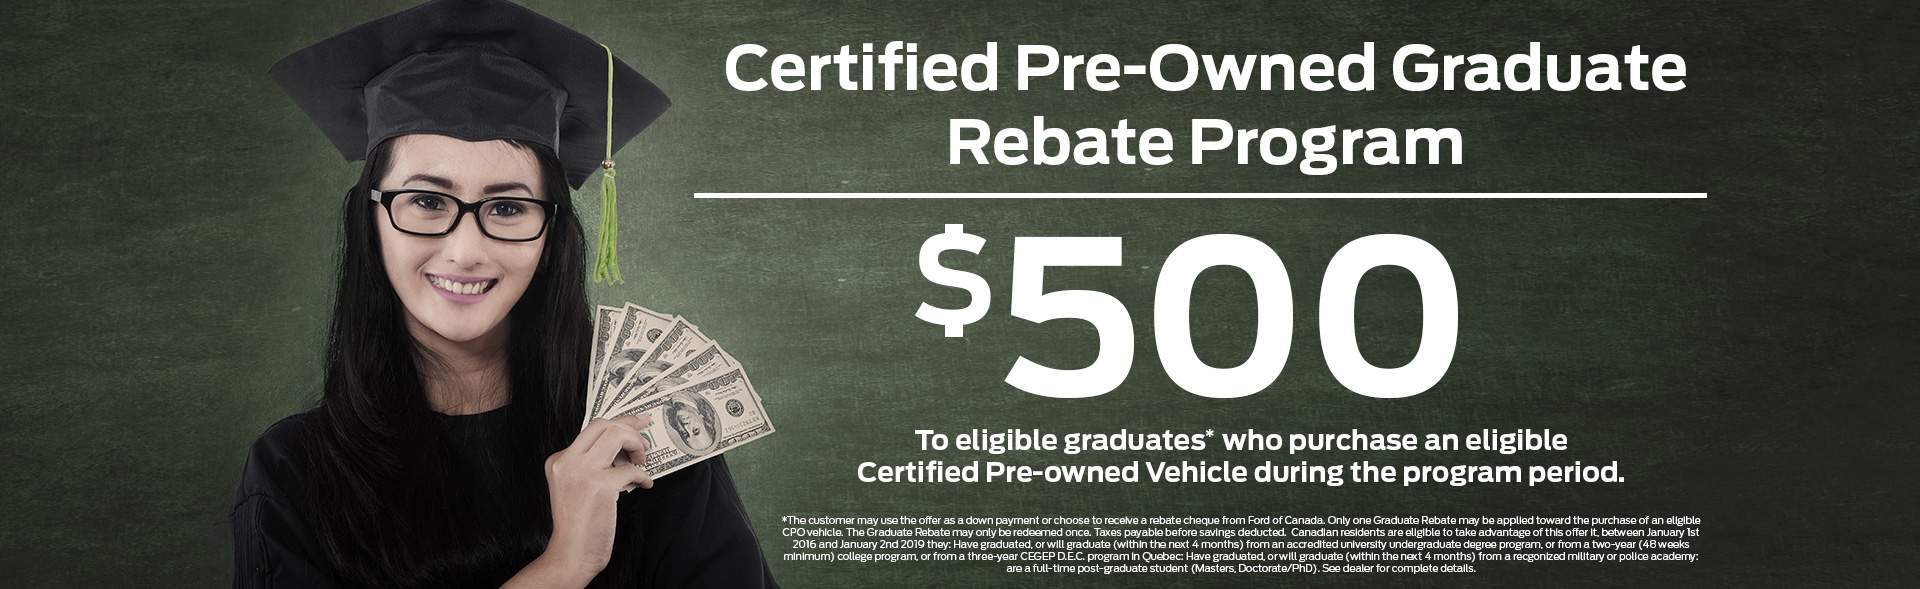 Certified Pre-Owned Graduate Rebate